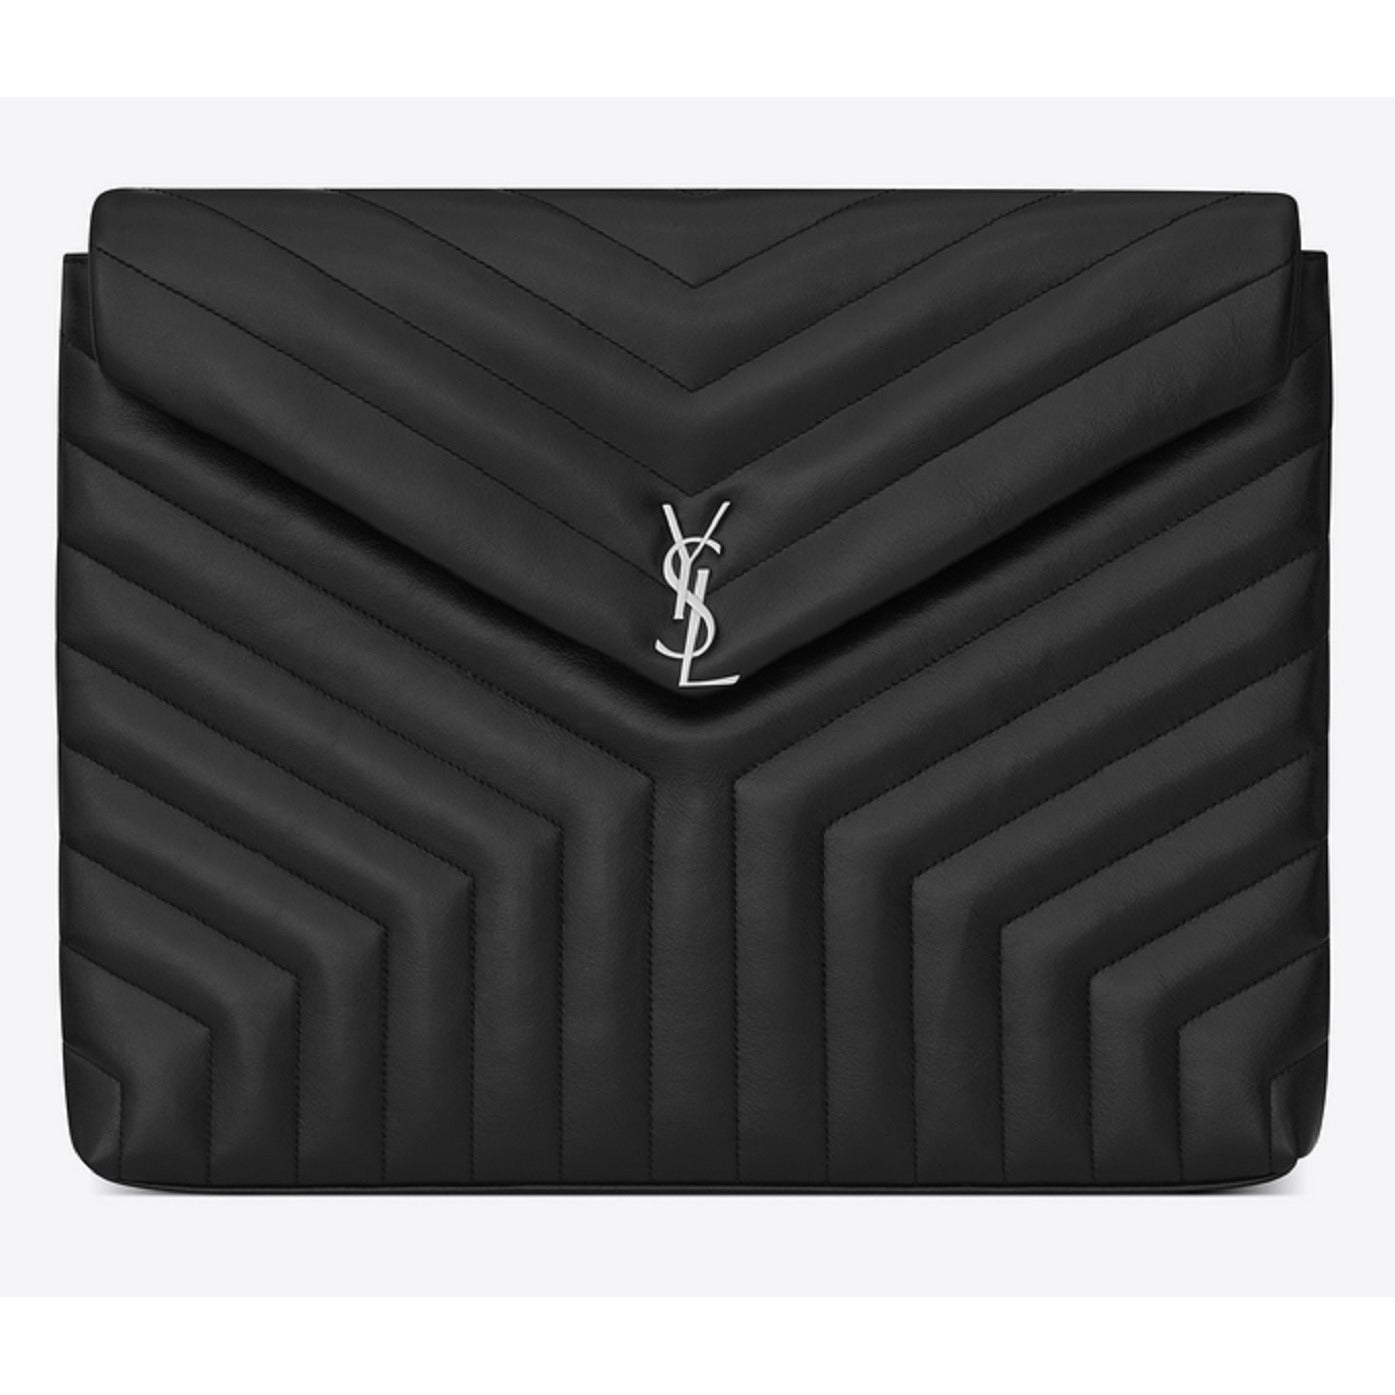 YSL Saint Laurent LouLou Document Holder Monogramme Vitello Piumotto Black Leather 483236 Handbags Saint Laurent